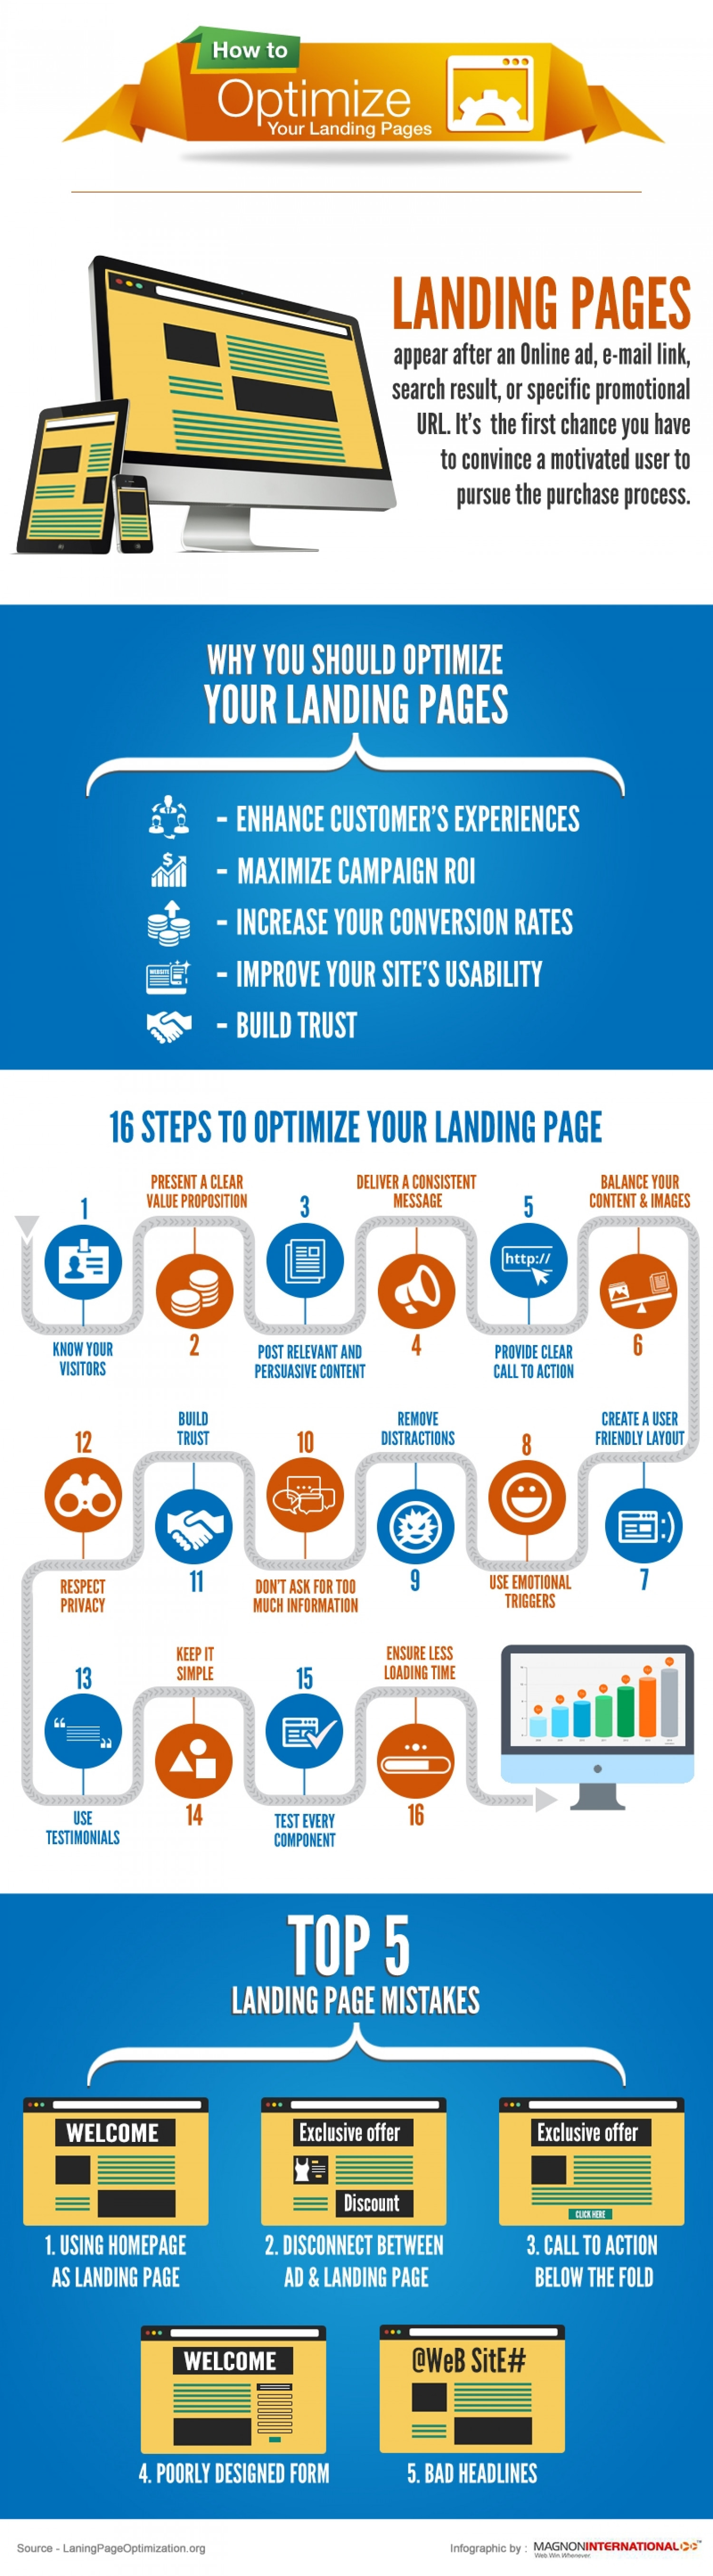 How to optimize your landing page? Infographic